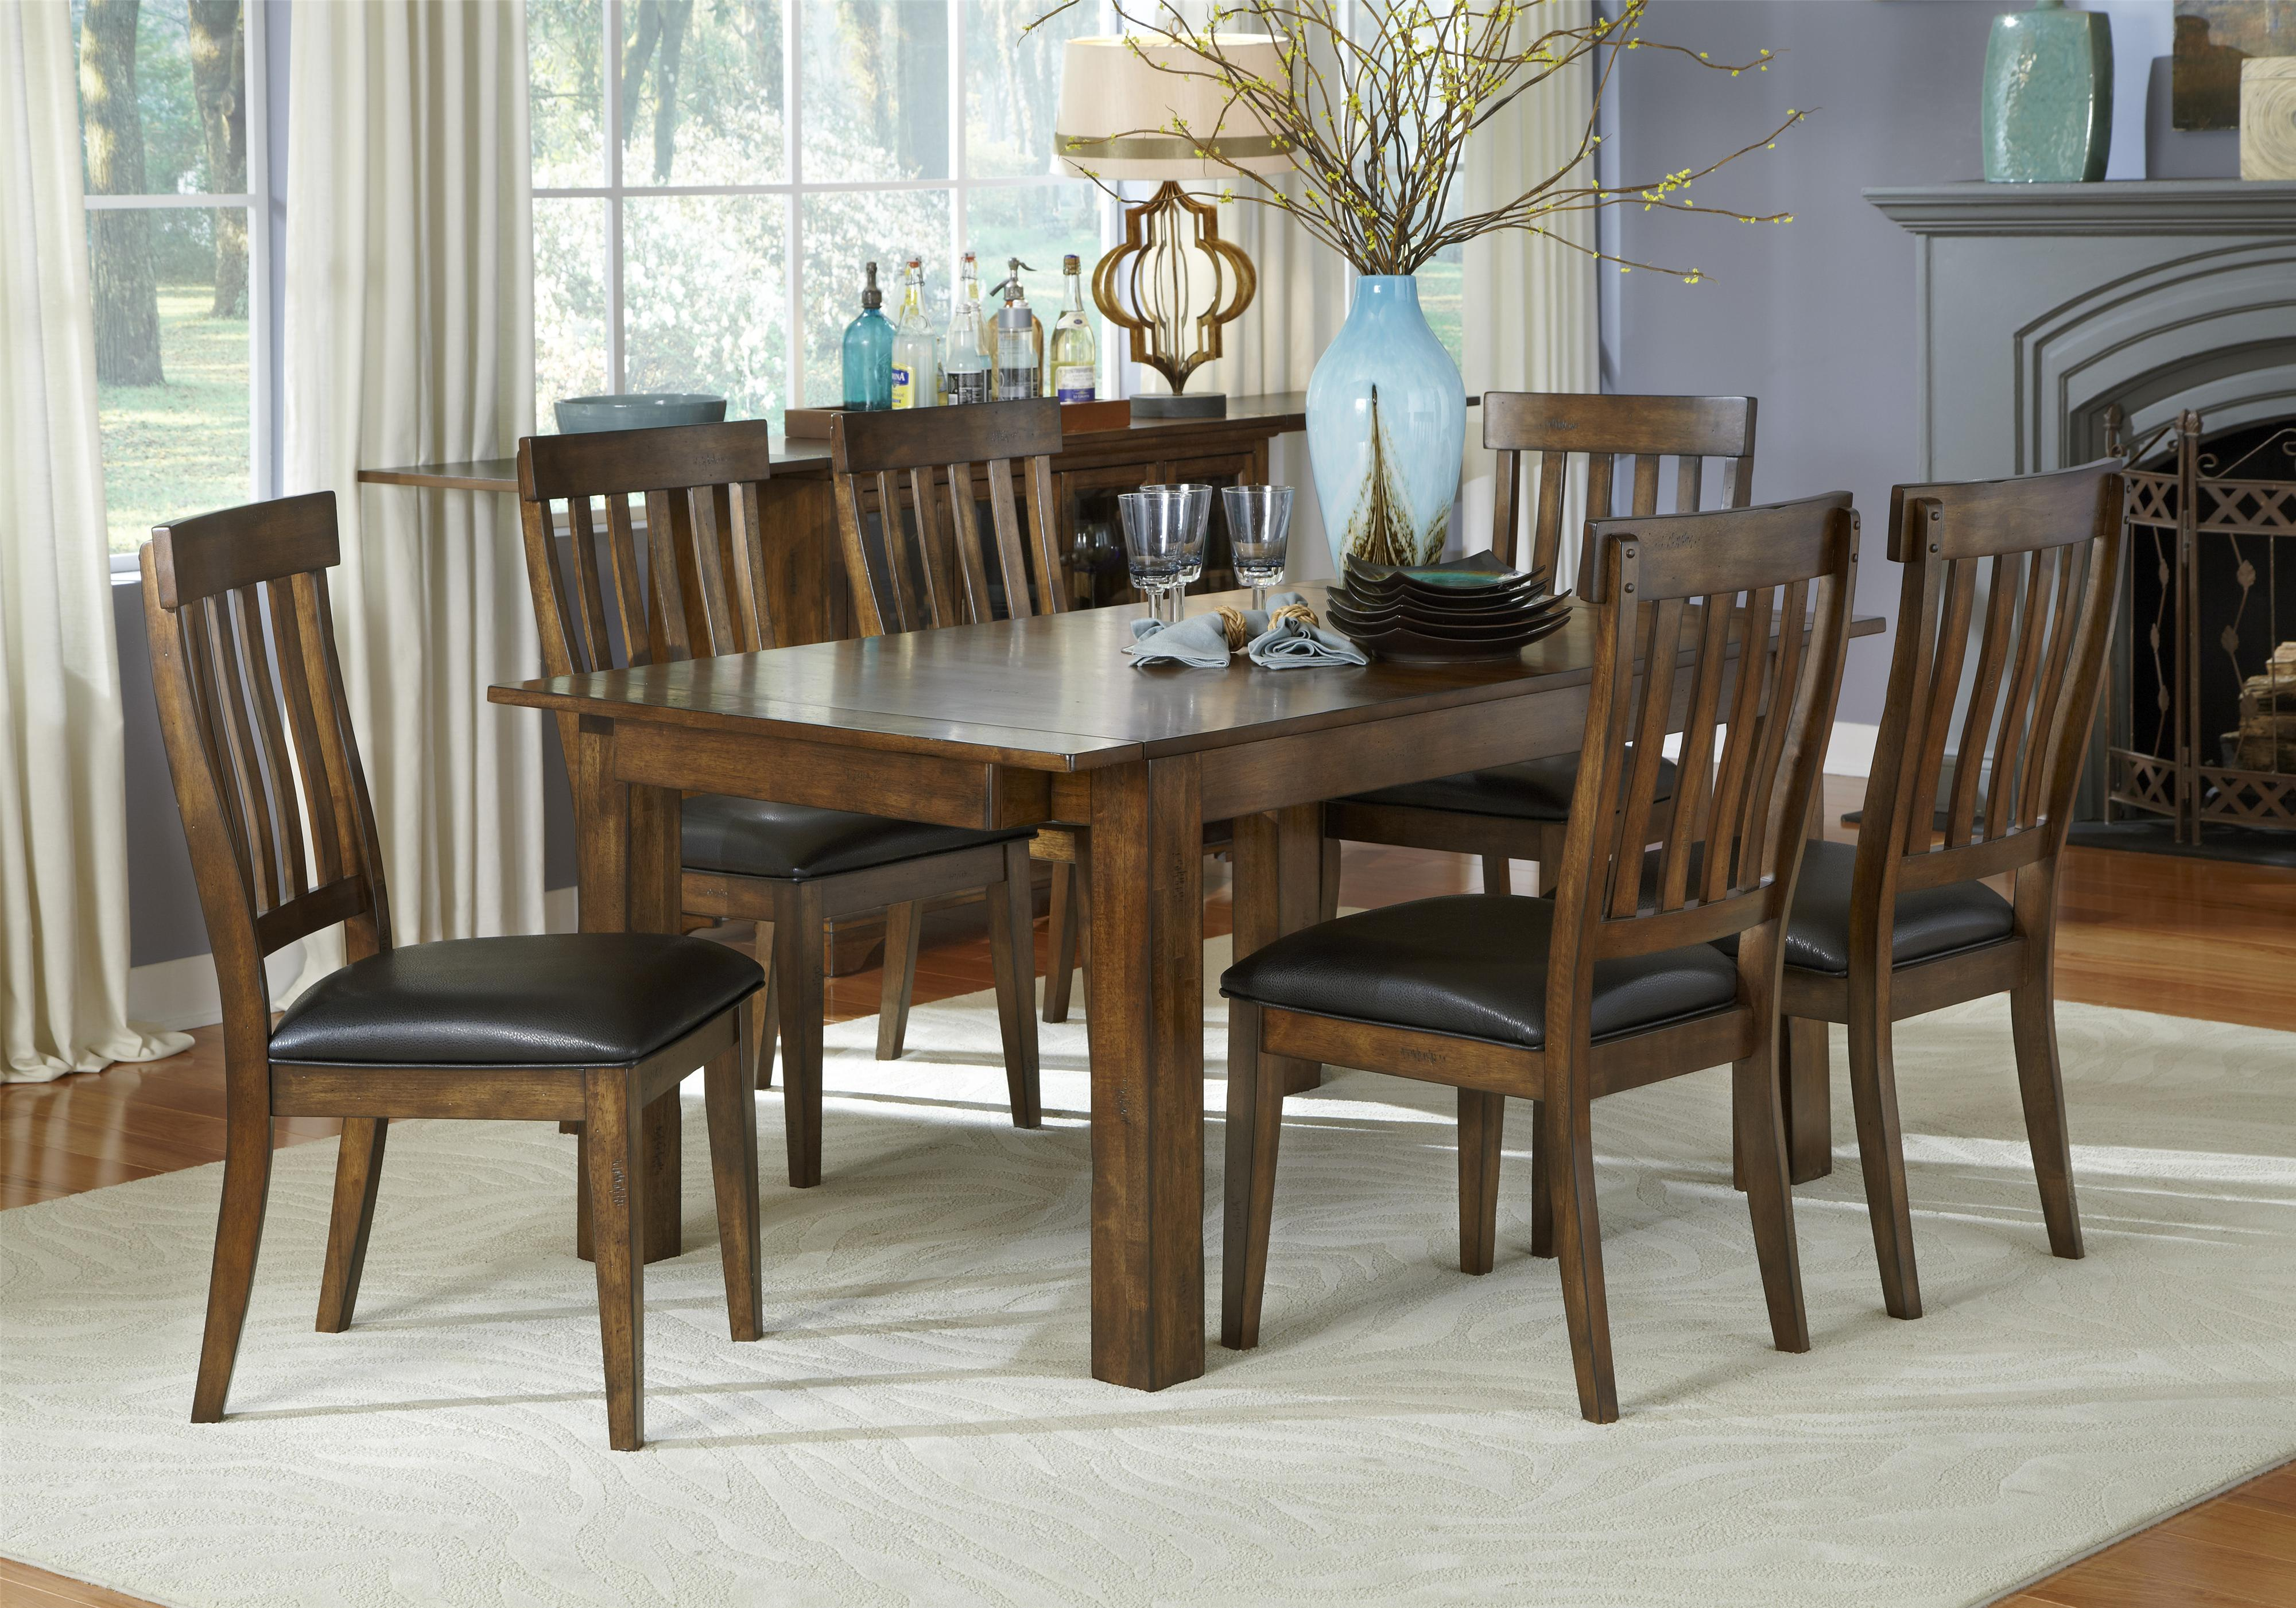 AAmerica Mariposa 7 Piece Table and Chairs Set - Item Number: MRP-RW-6-20-0+6x2-65-K